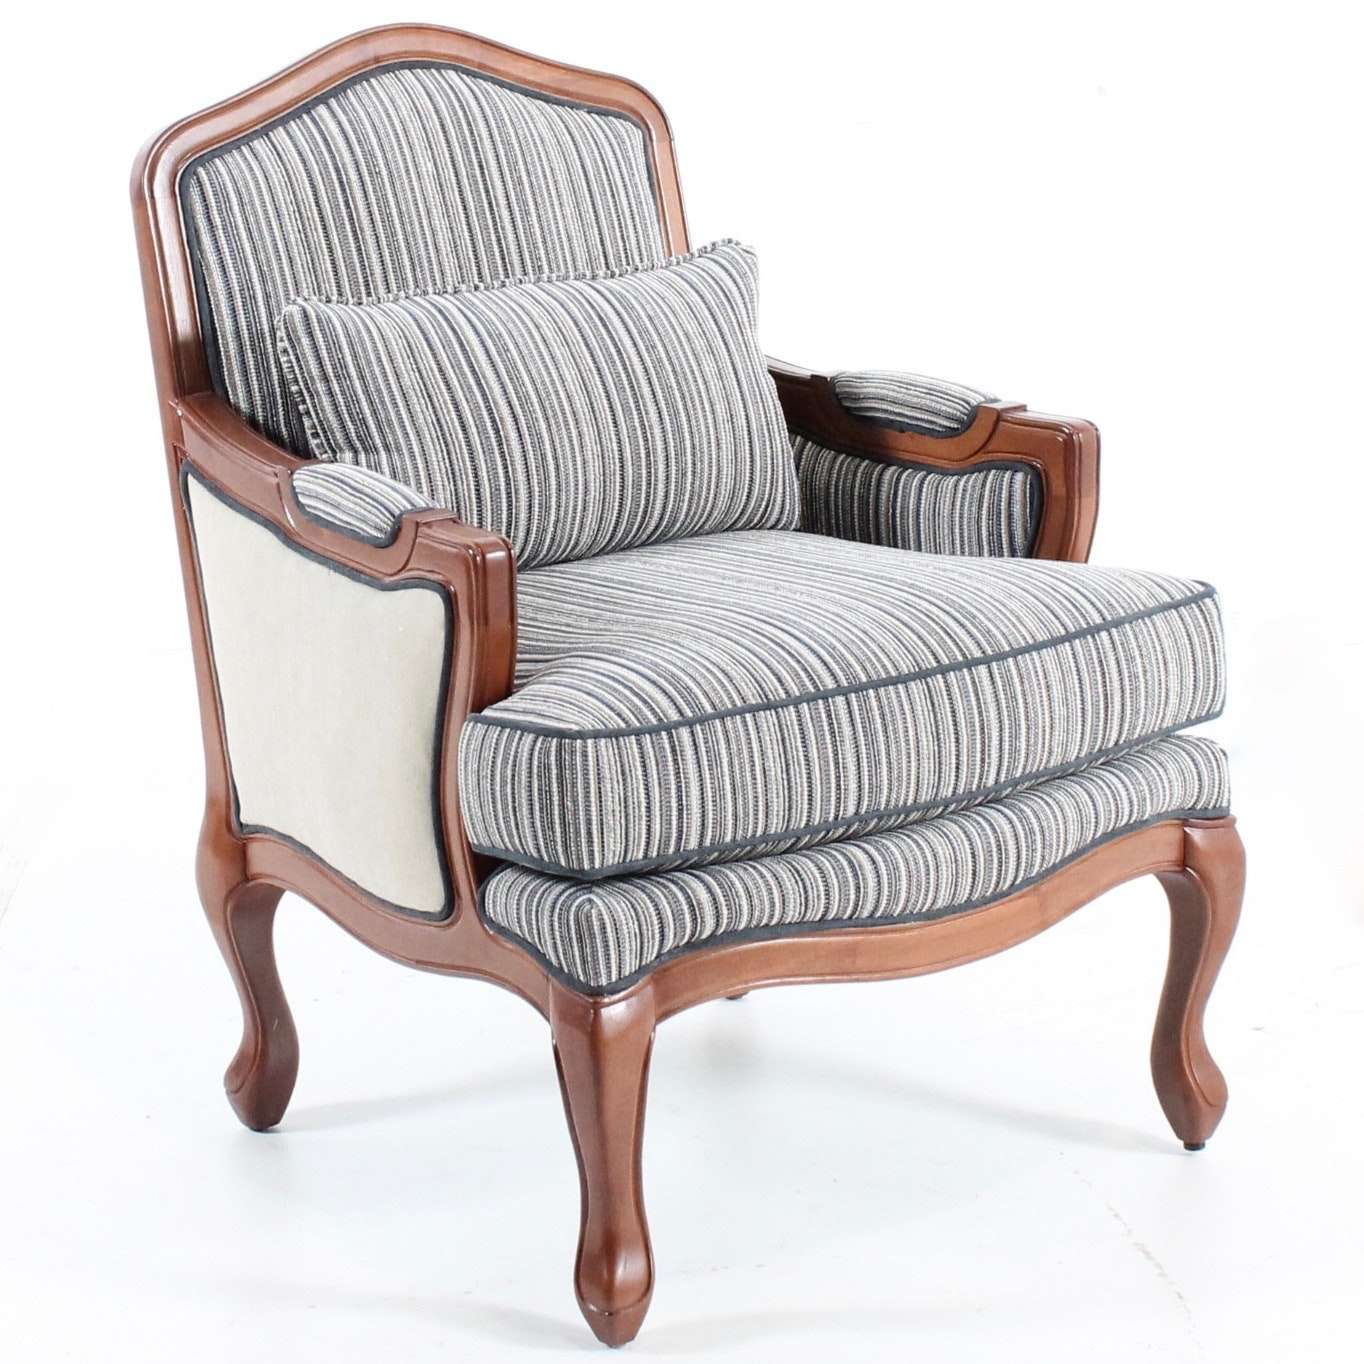 Bergère Chair by Craftmaster for Hickorycraft